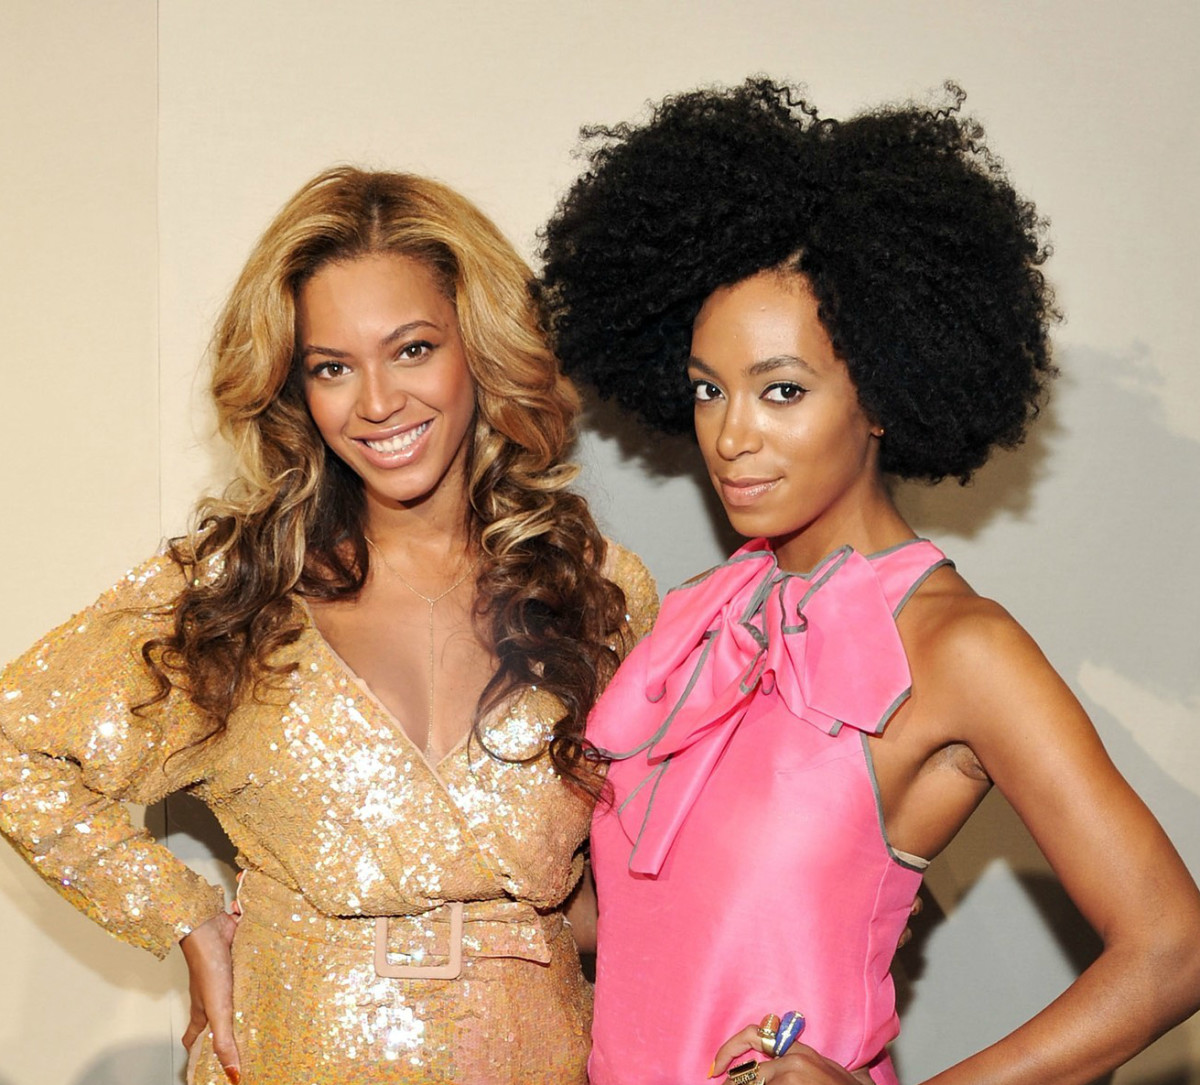 Solange, baby sister of Beyonce, attacker of Jay-Z